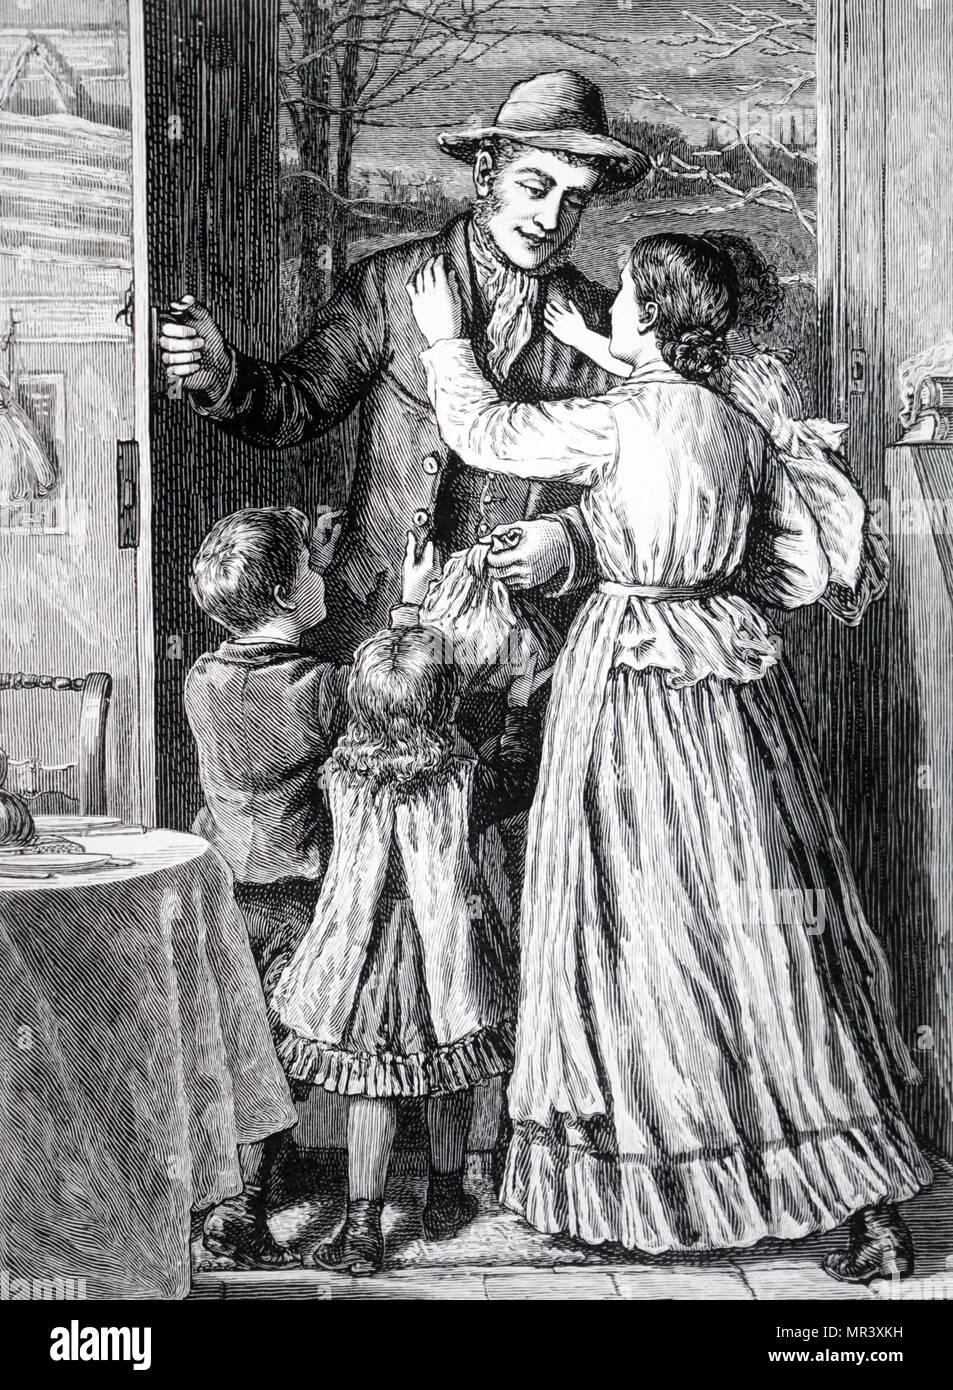 Wood engraving depicting a labourer being greeted by his family as he returns home from work. Dated 19th century - Stock Image